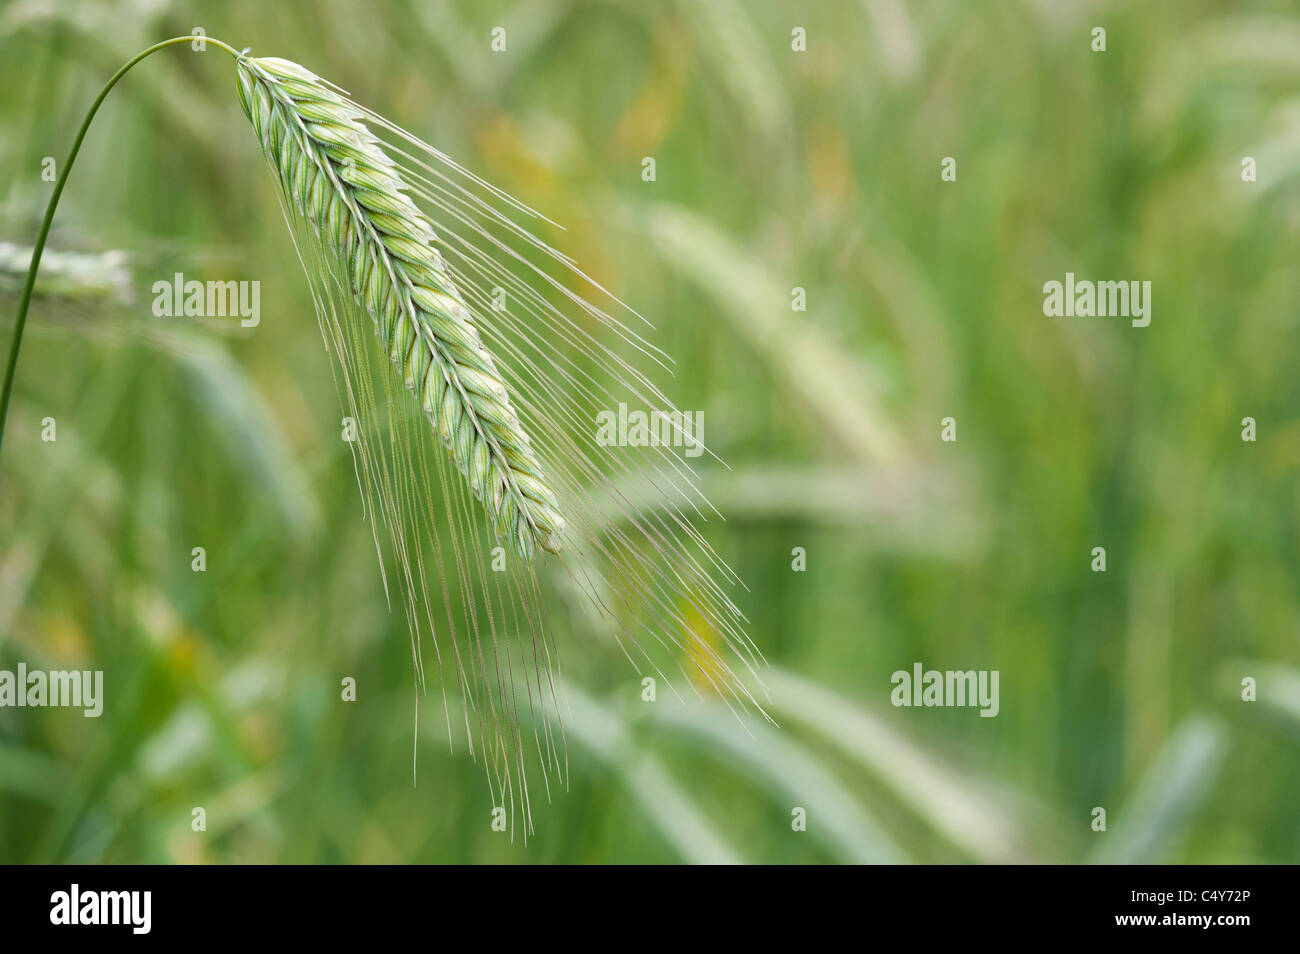 Secale cereale. Rye grass seed head - Stock Image